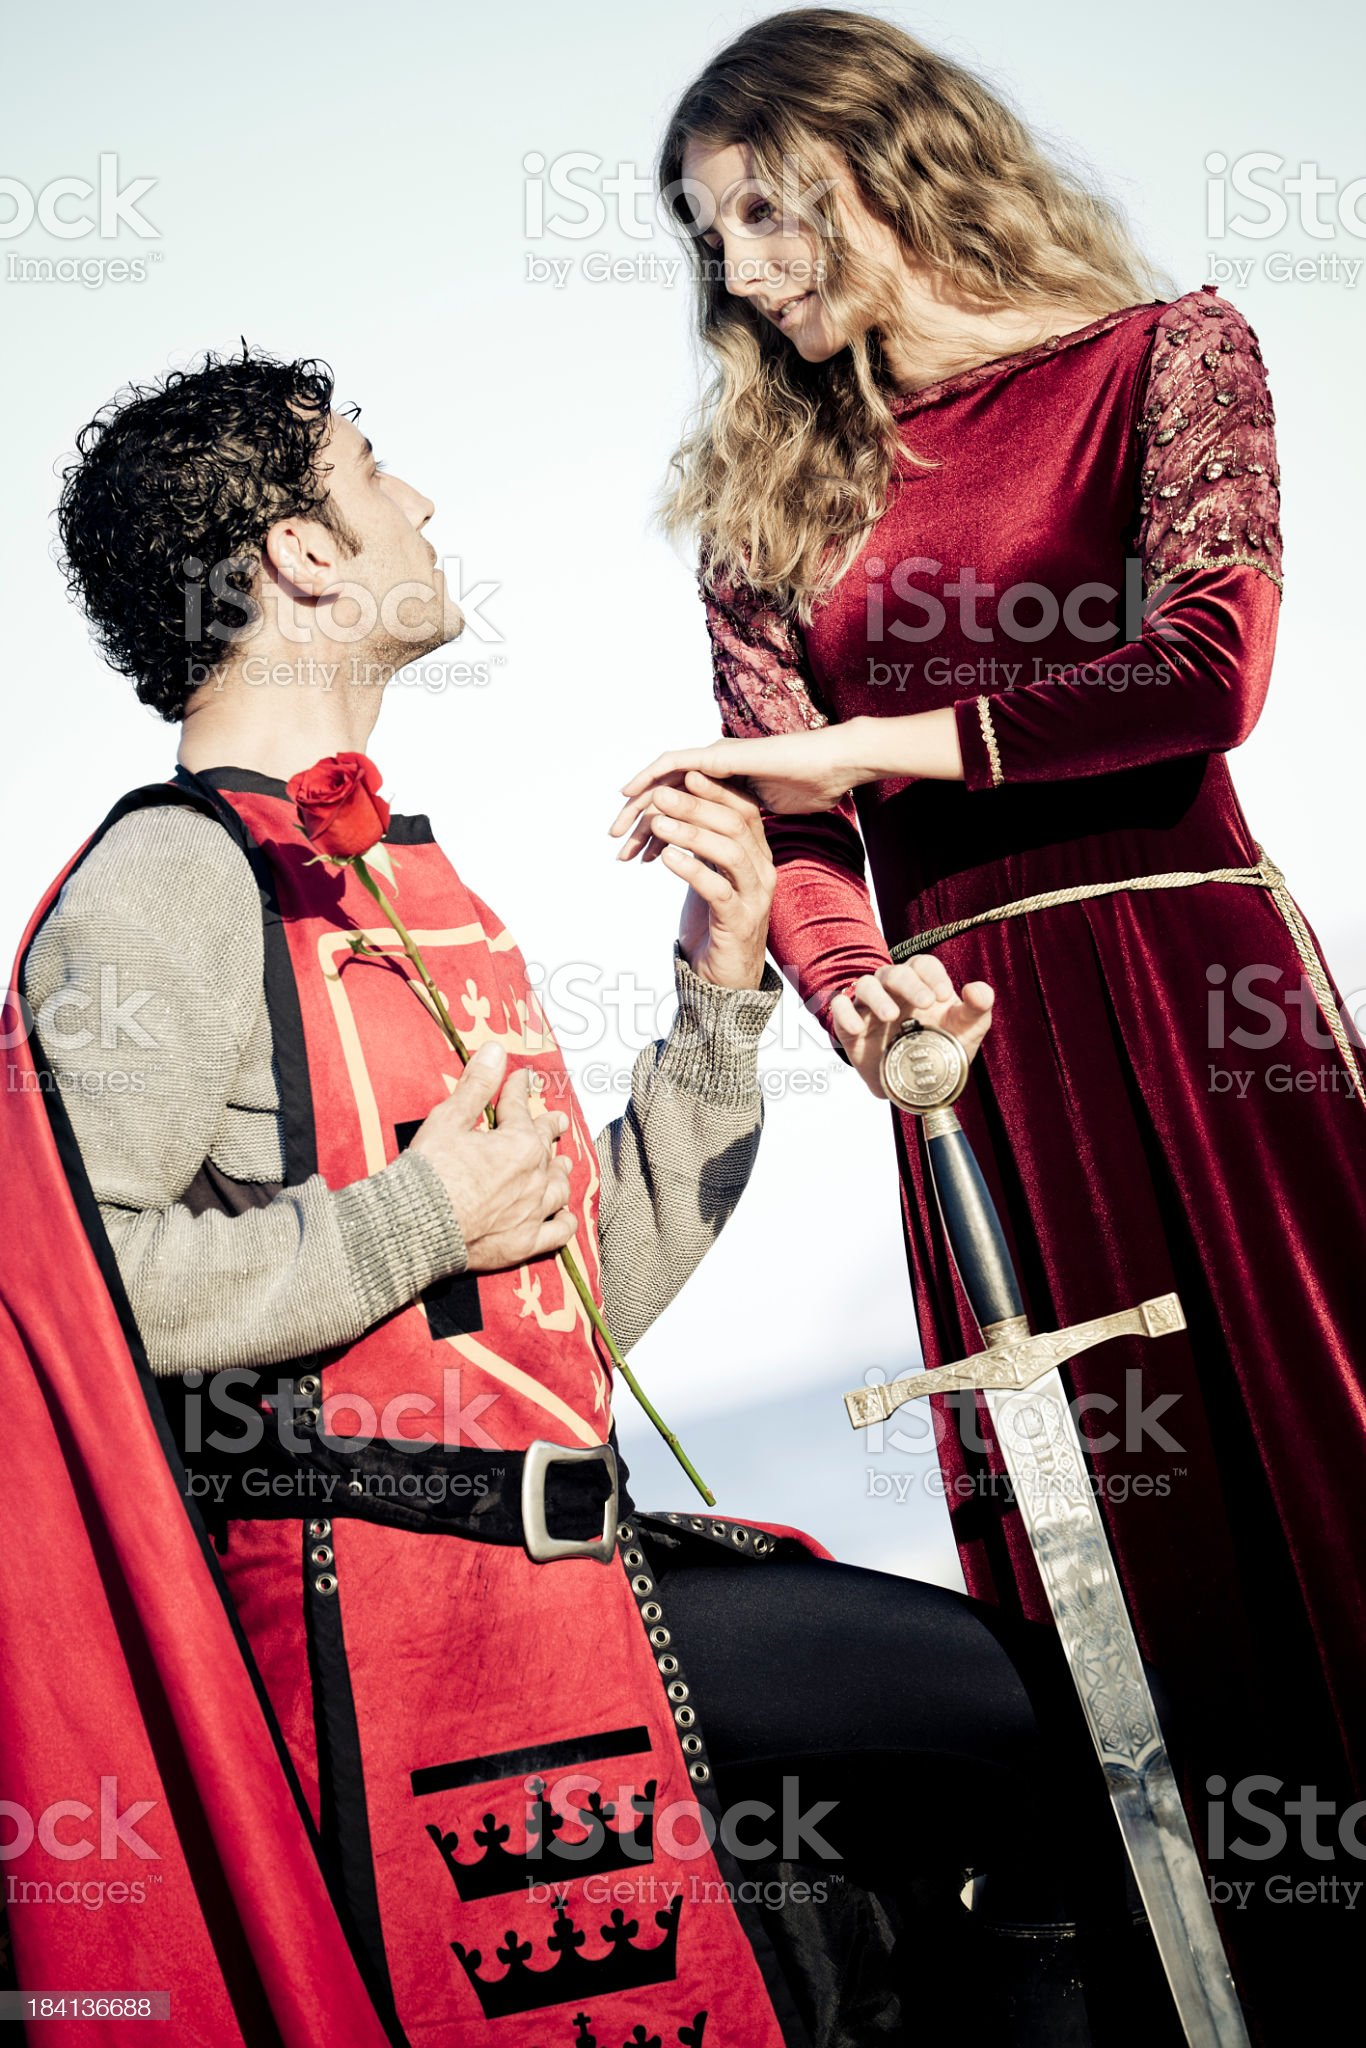 reverential kneeling knight and medieval lady royalty-free stock photo